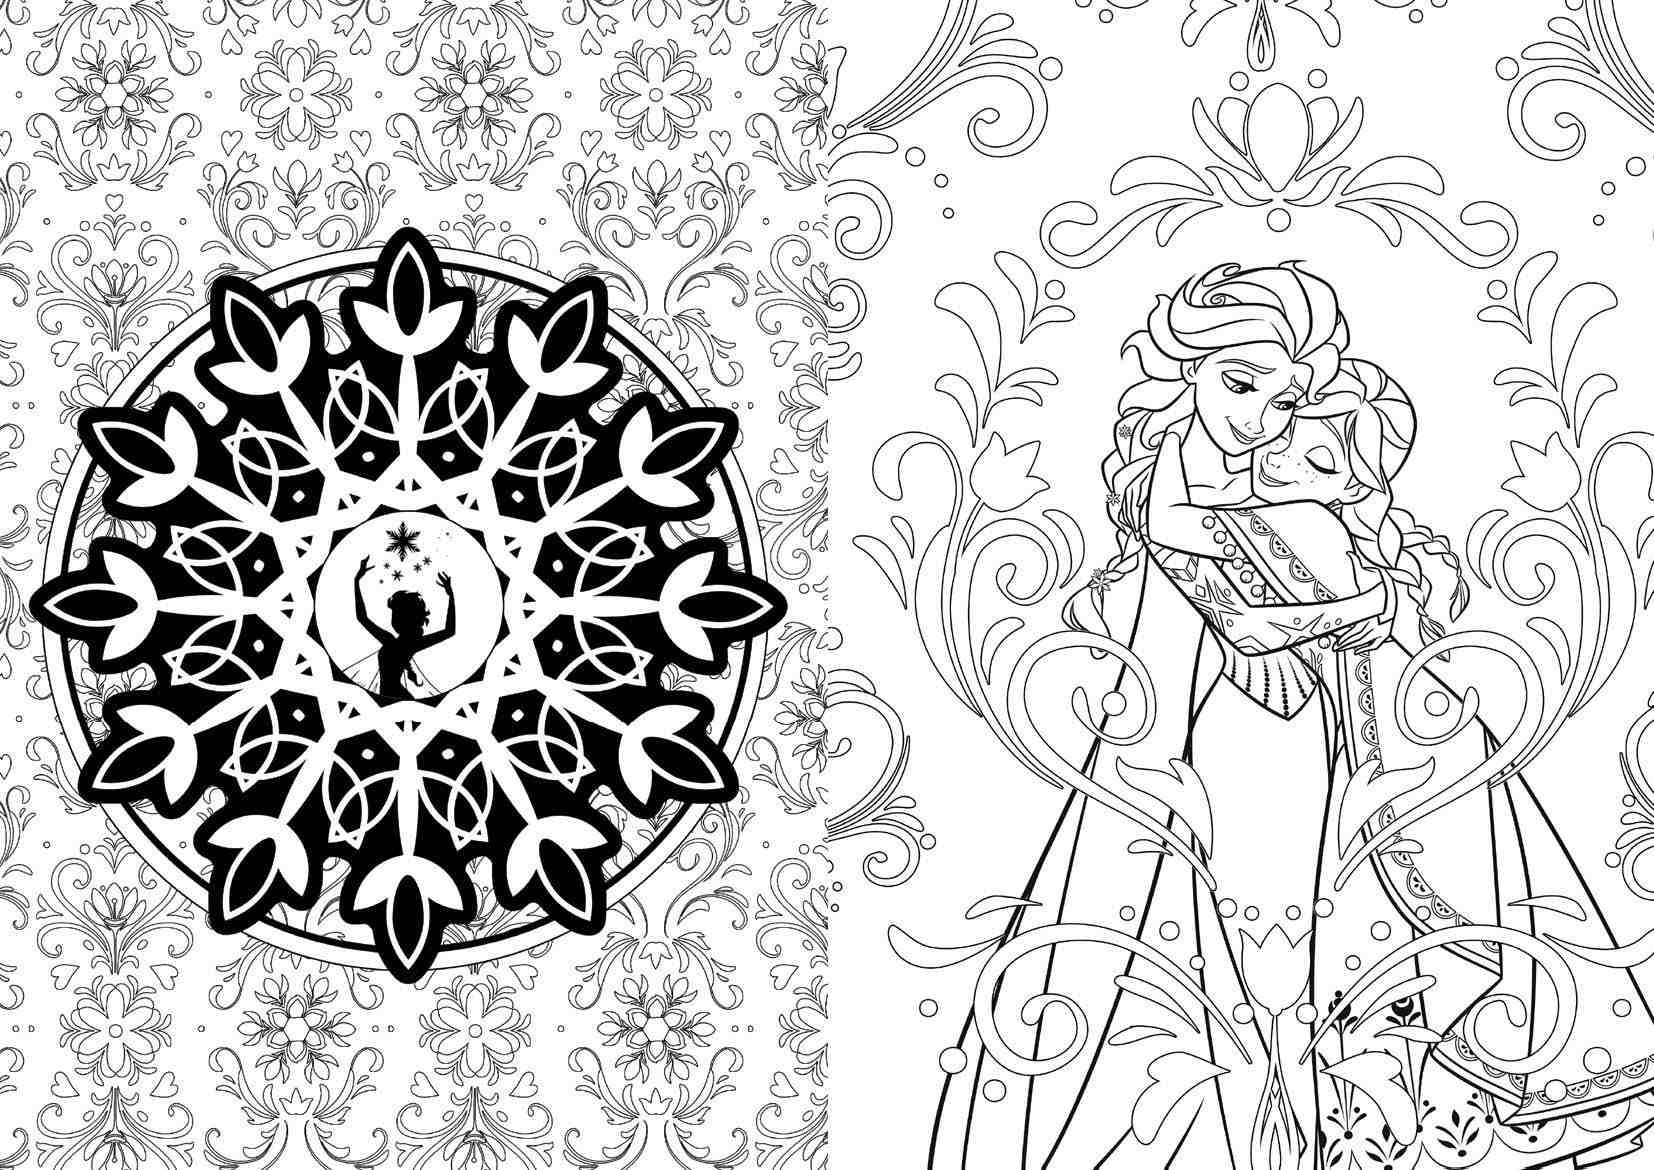 Disney Enters The Art Therapy Space With Two New Adult Coloring Books